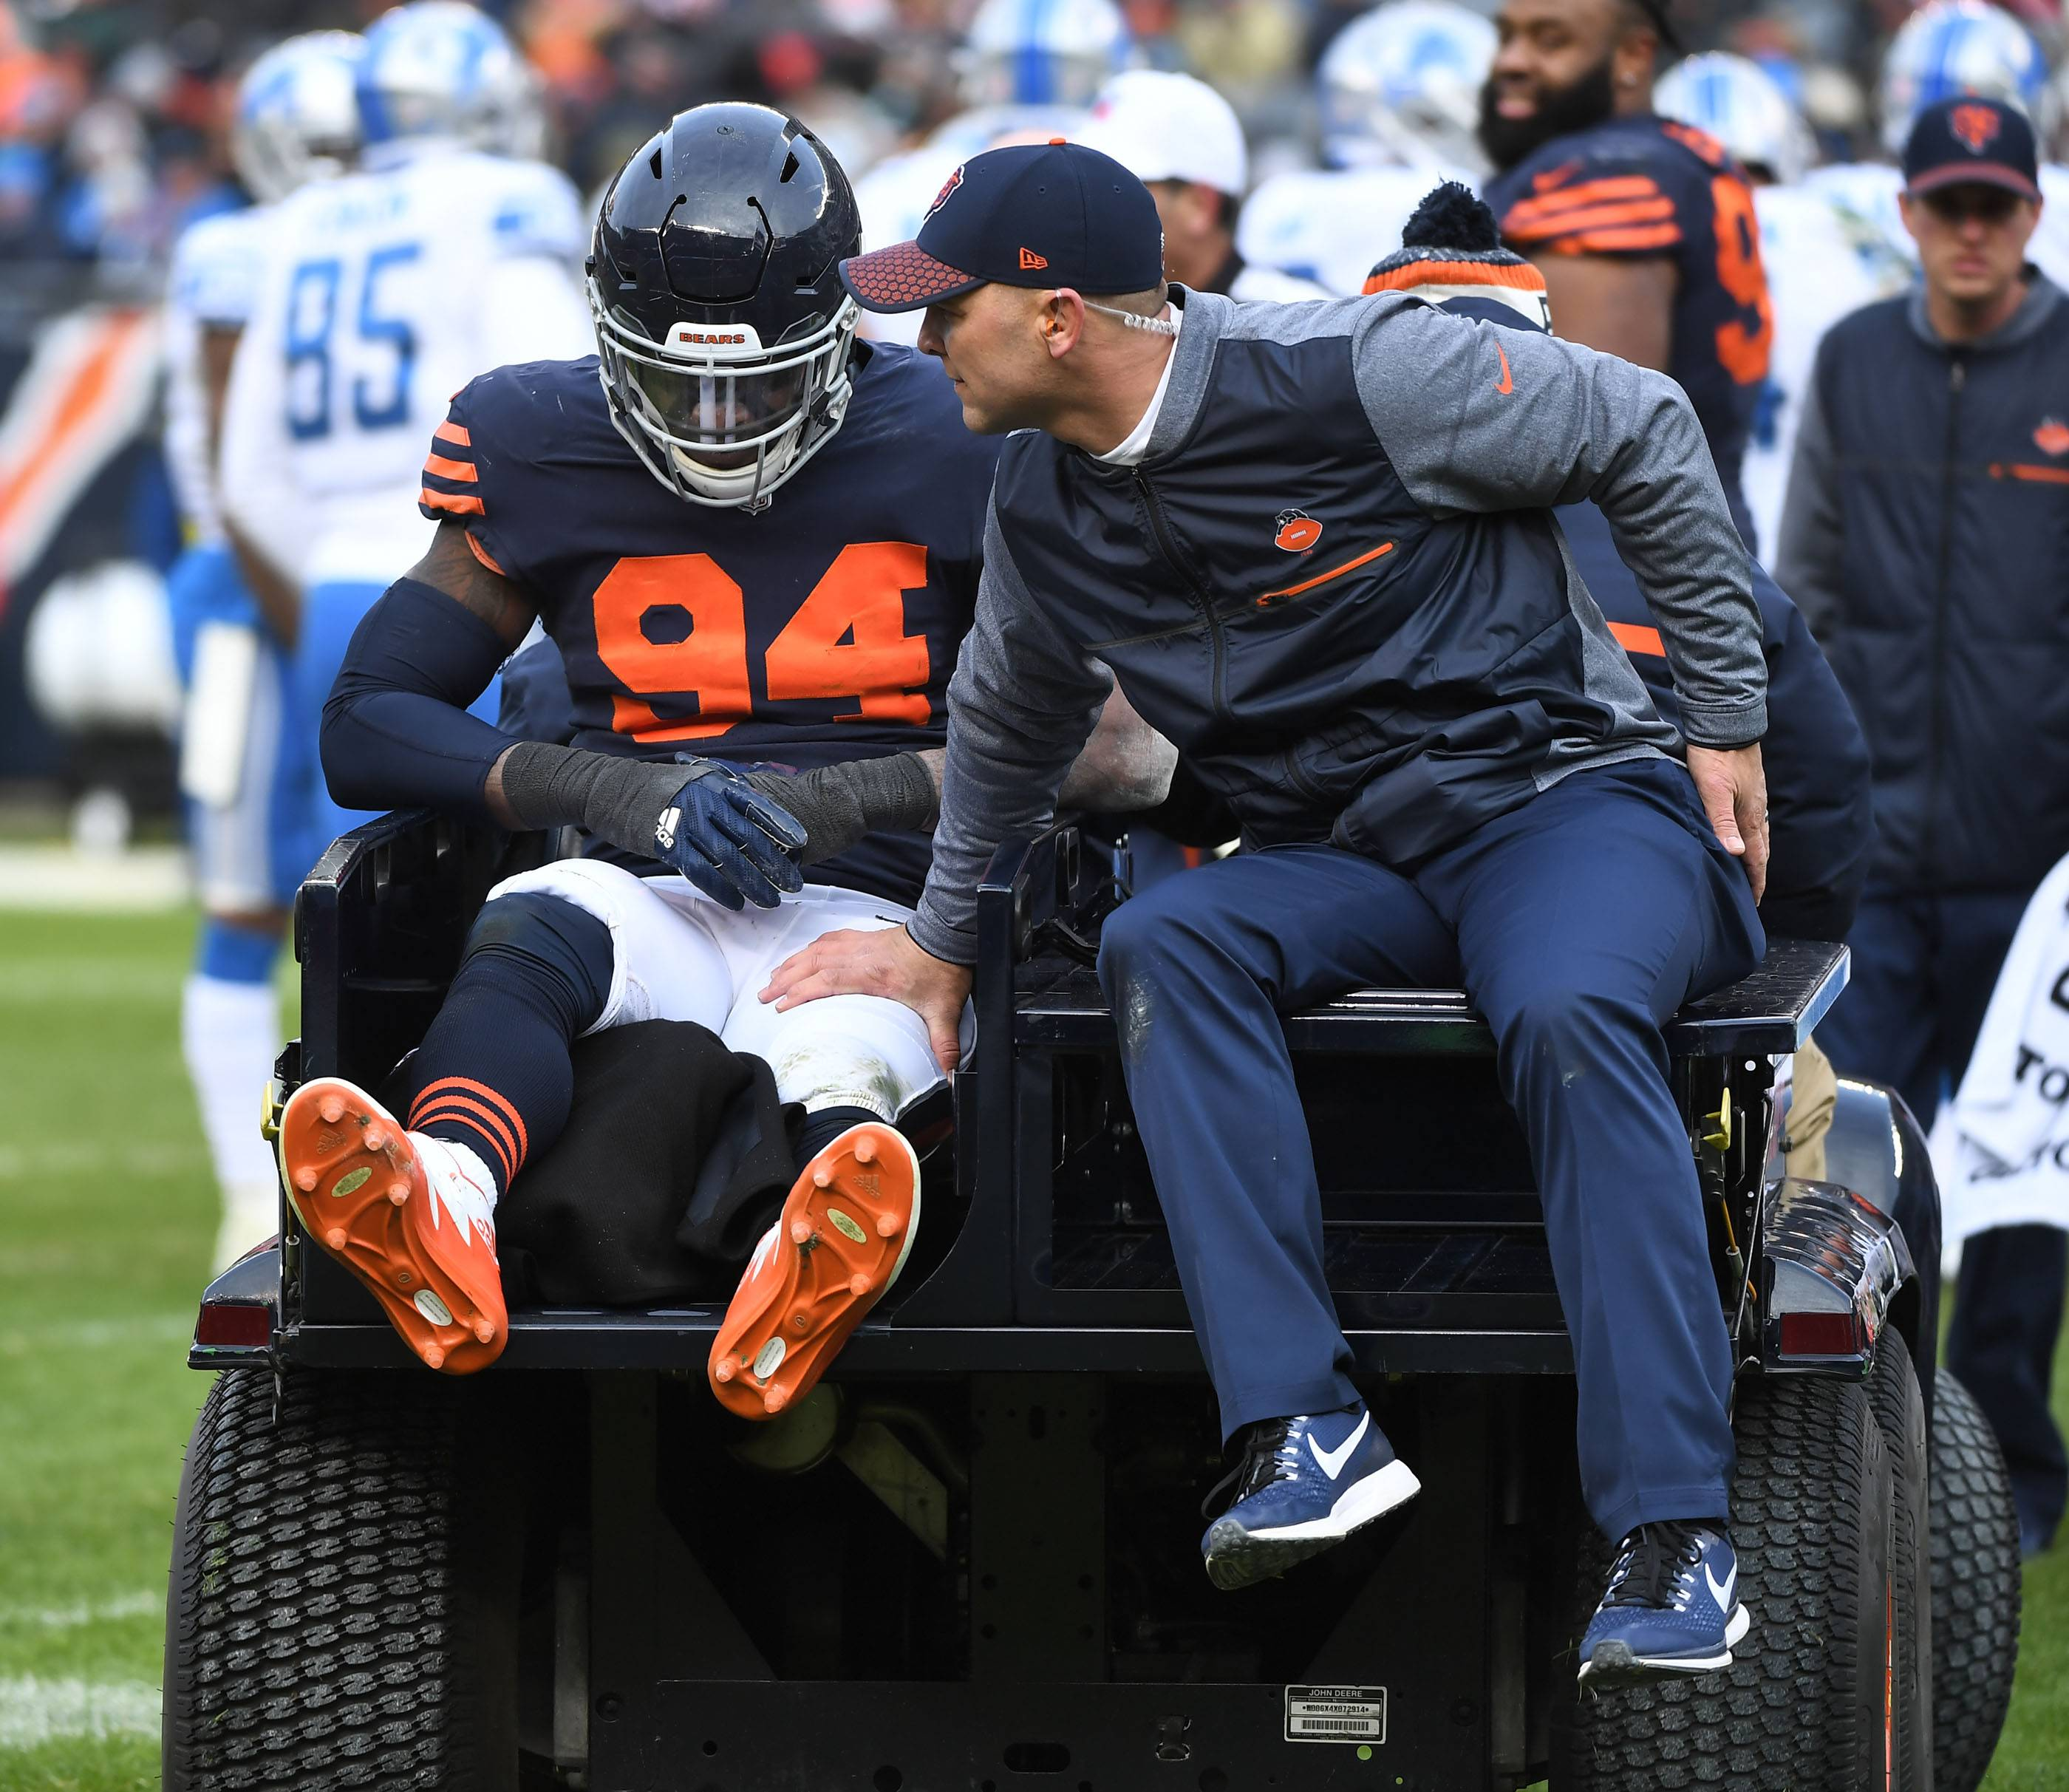 Bears outside linebacker Leonard Floyd is taken from the field after a leg injury in the fourth quarter against the Detroit Lions Sunday at Soldier Field in Chicago.